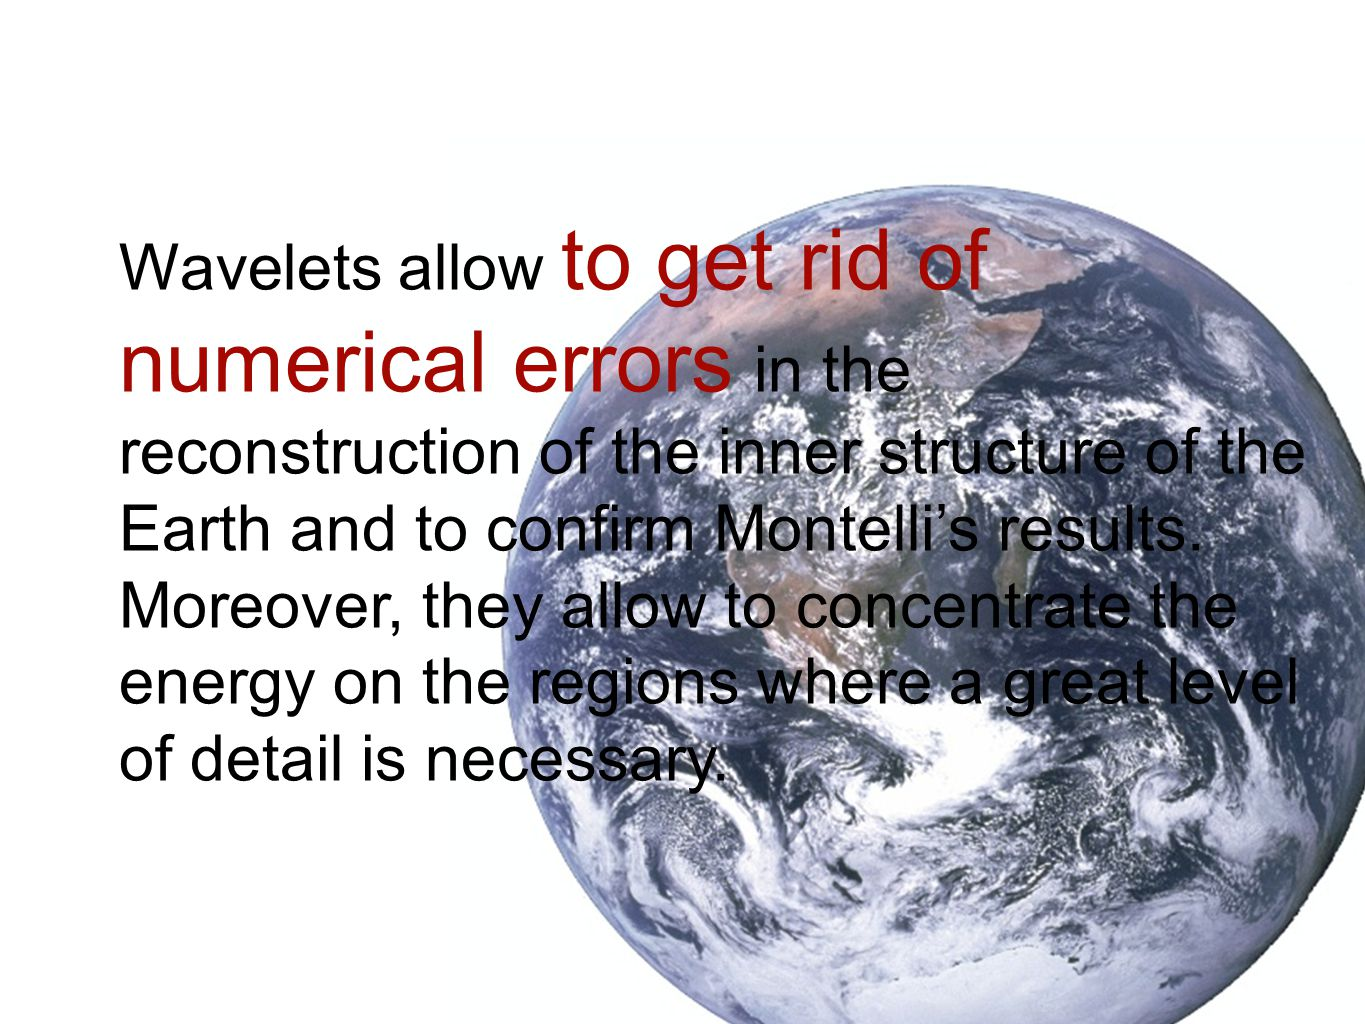 Wavelets allow to get rid of numerical errors in the reconstruction of the inner structure of the Earth and to confirm Montelli's results.